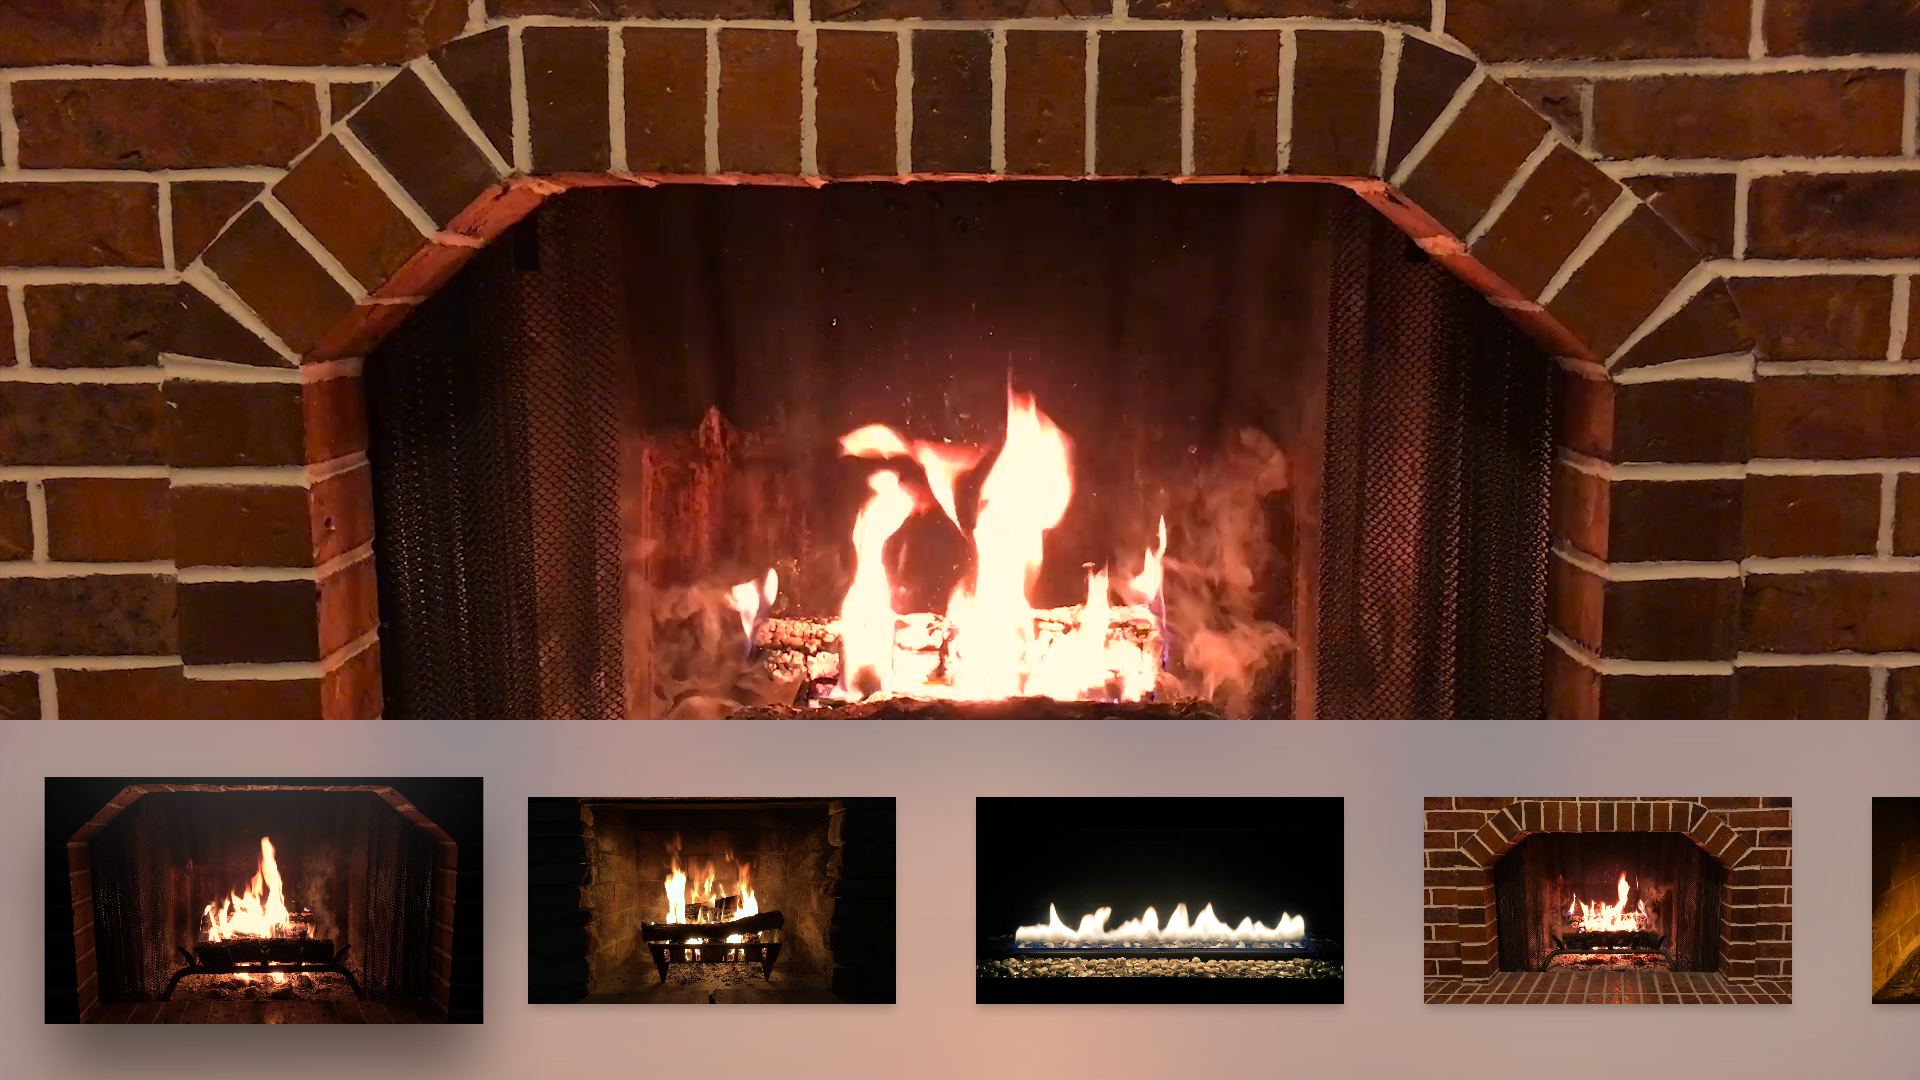 Scenic Loops - Fireplaces screenshot 3